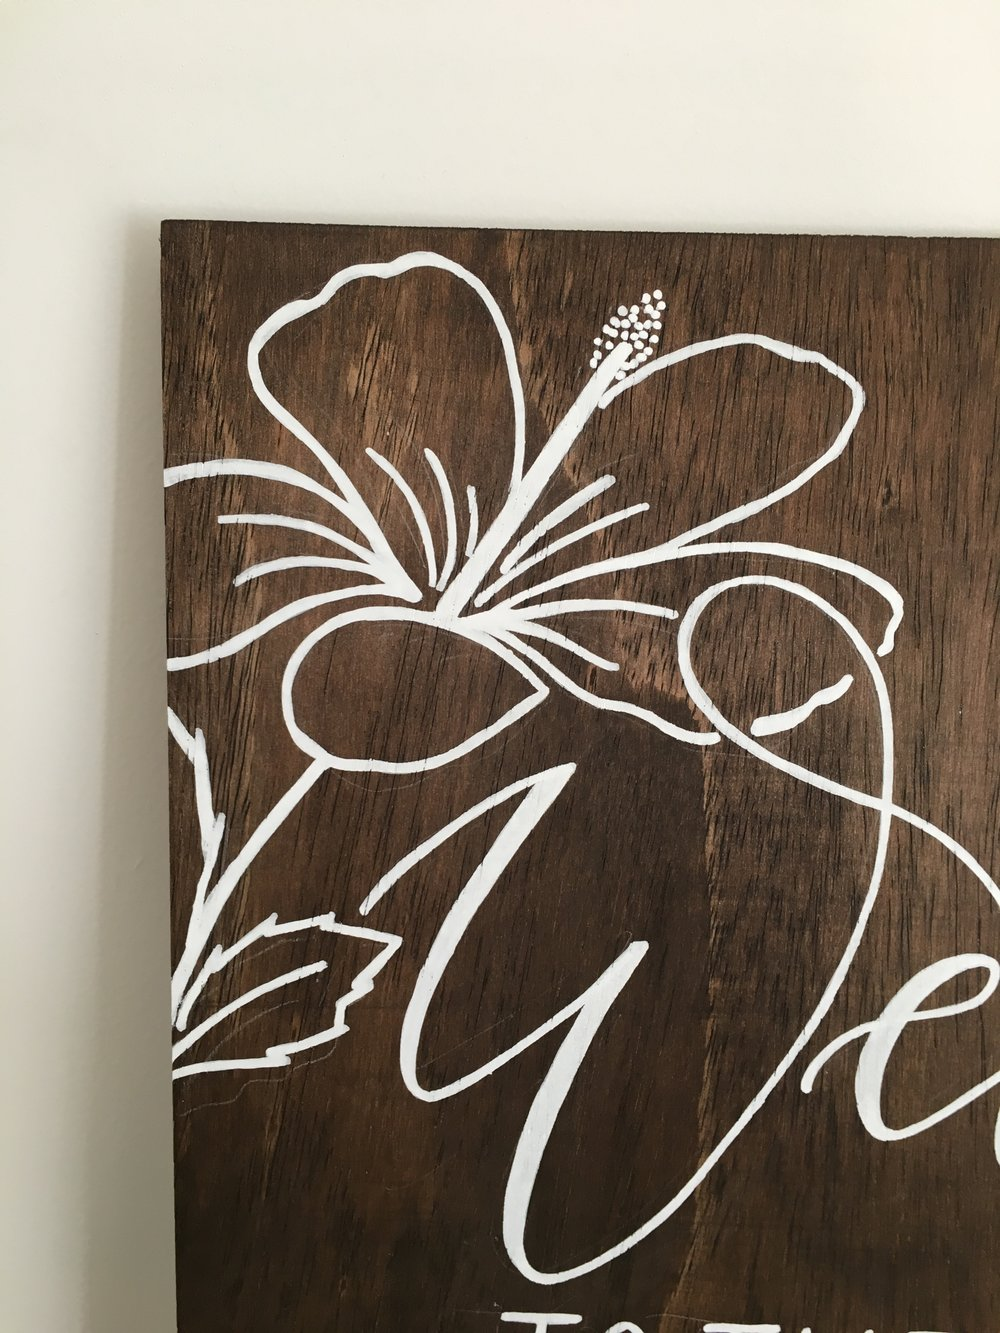 custom wedding sign, calligraphy wood sign, wood sign shop, wedding wood sign, wood wedding sign